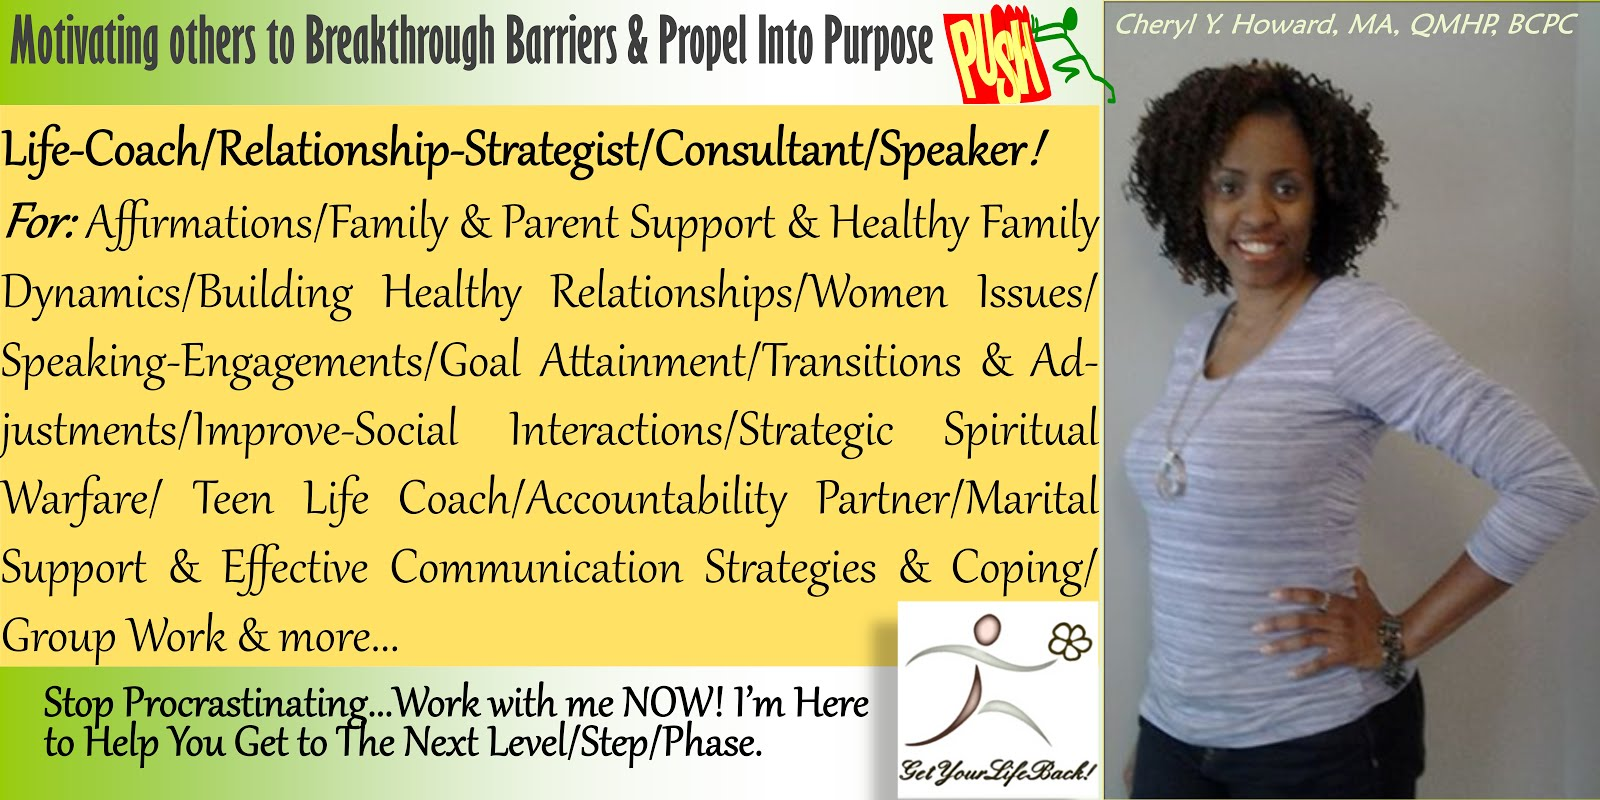 'GET YOUR LIFE BACK INSPIRATIONAL LIFE COACHING' with CHERYL (WORK WITH ME)